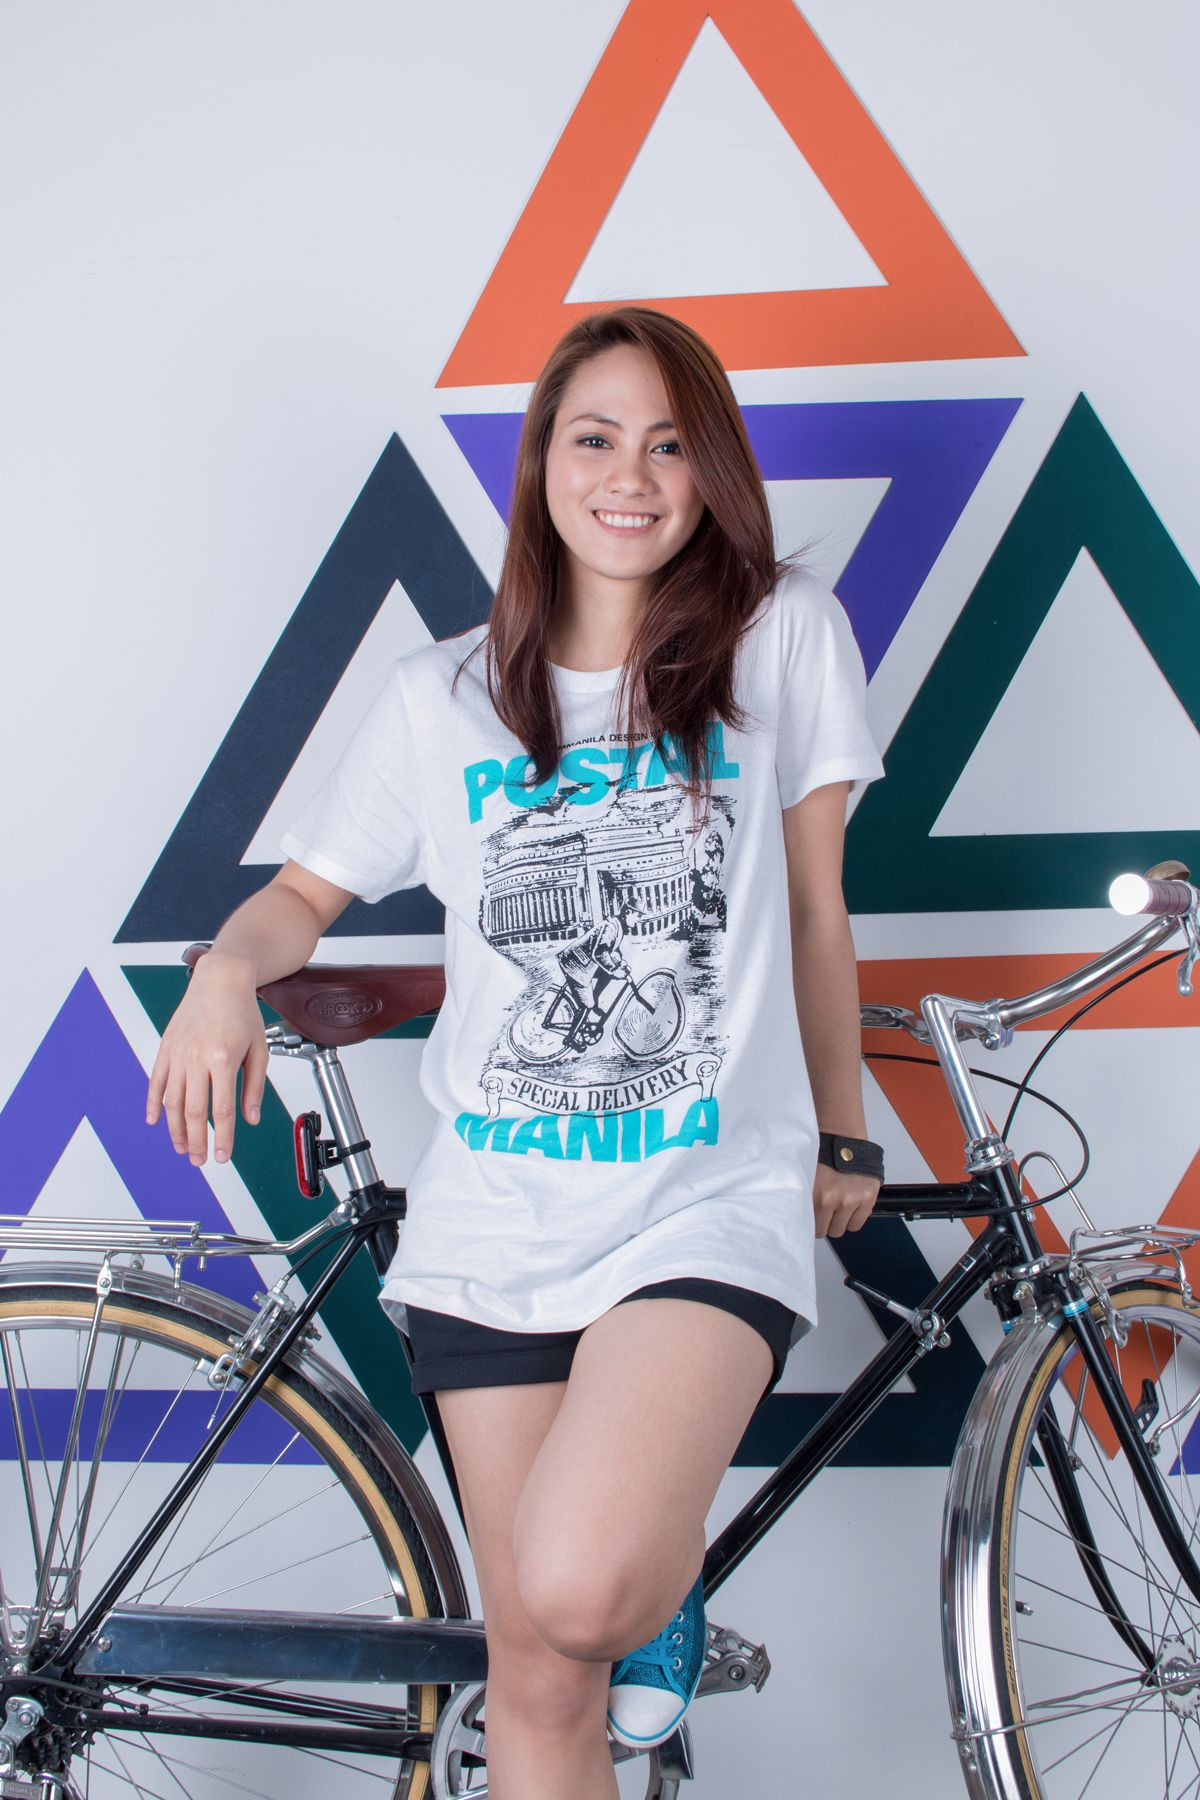 TeamManila Design Lab: Wheels and Triangles